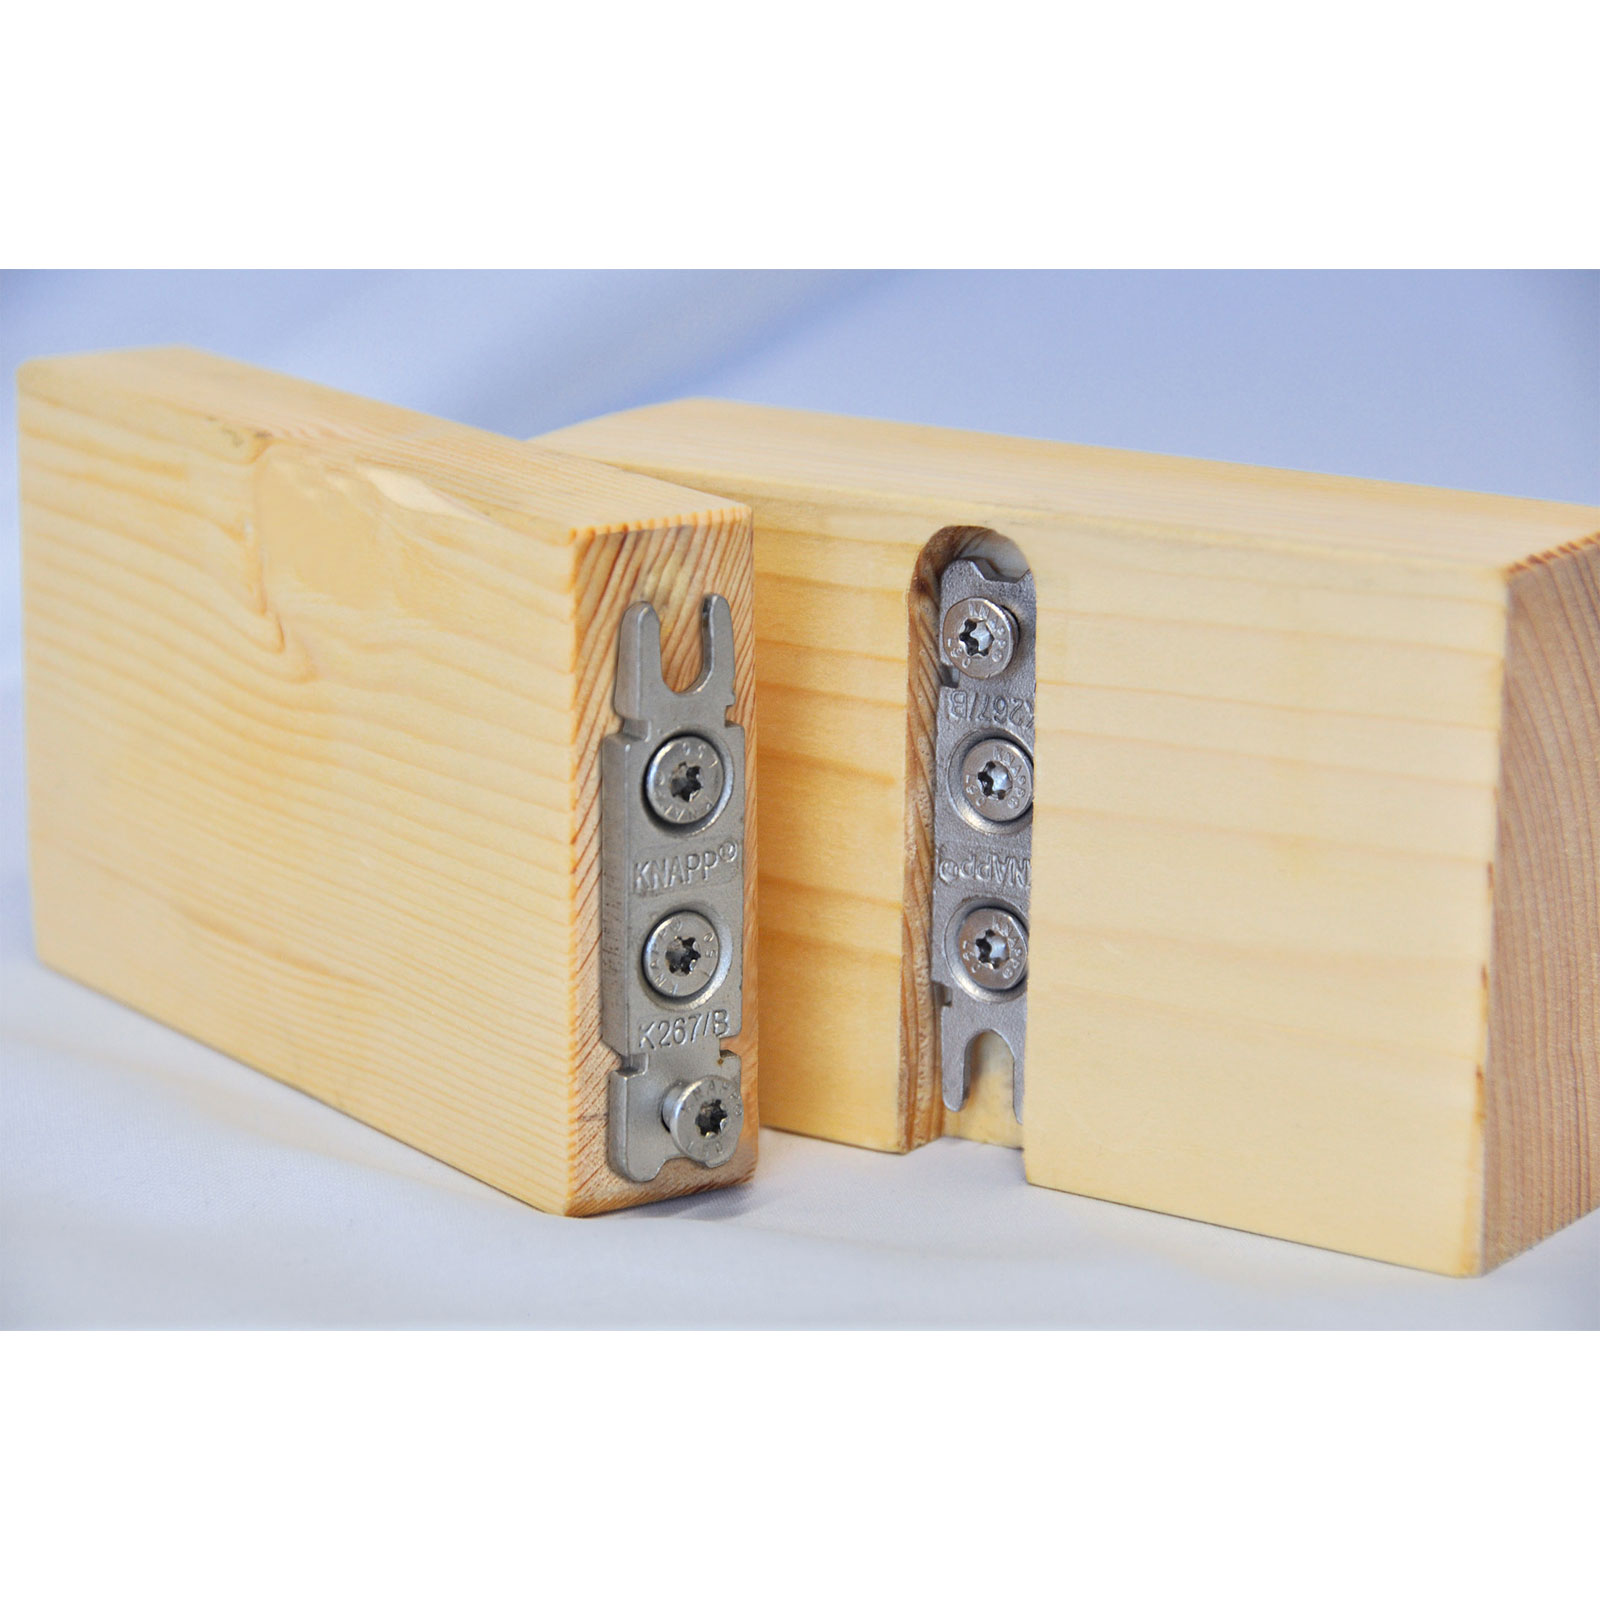 Pergola Eckverbinder Ricon Universal Wooden Connector Made Of Stainless Steel Knapp